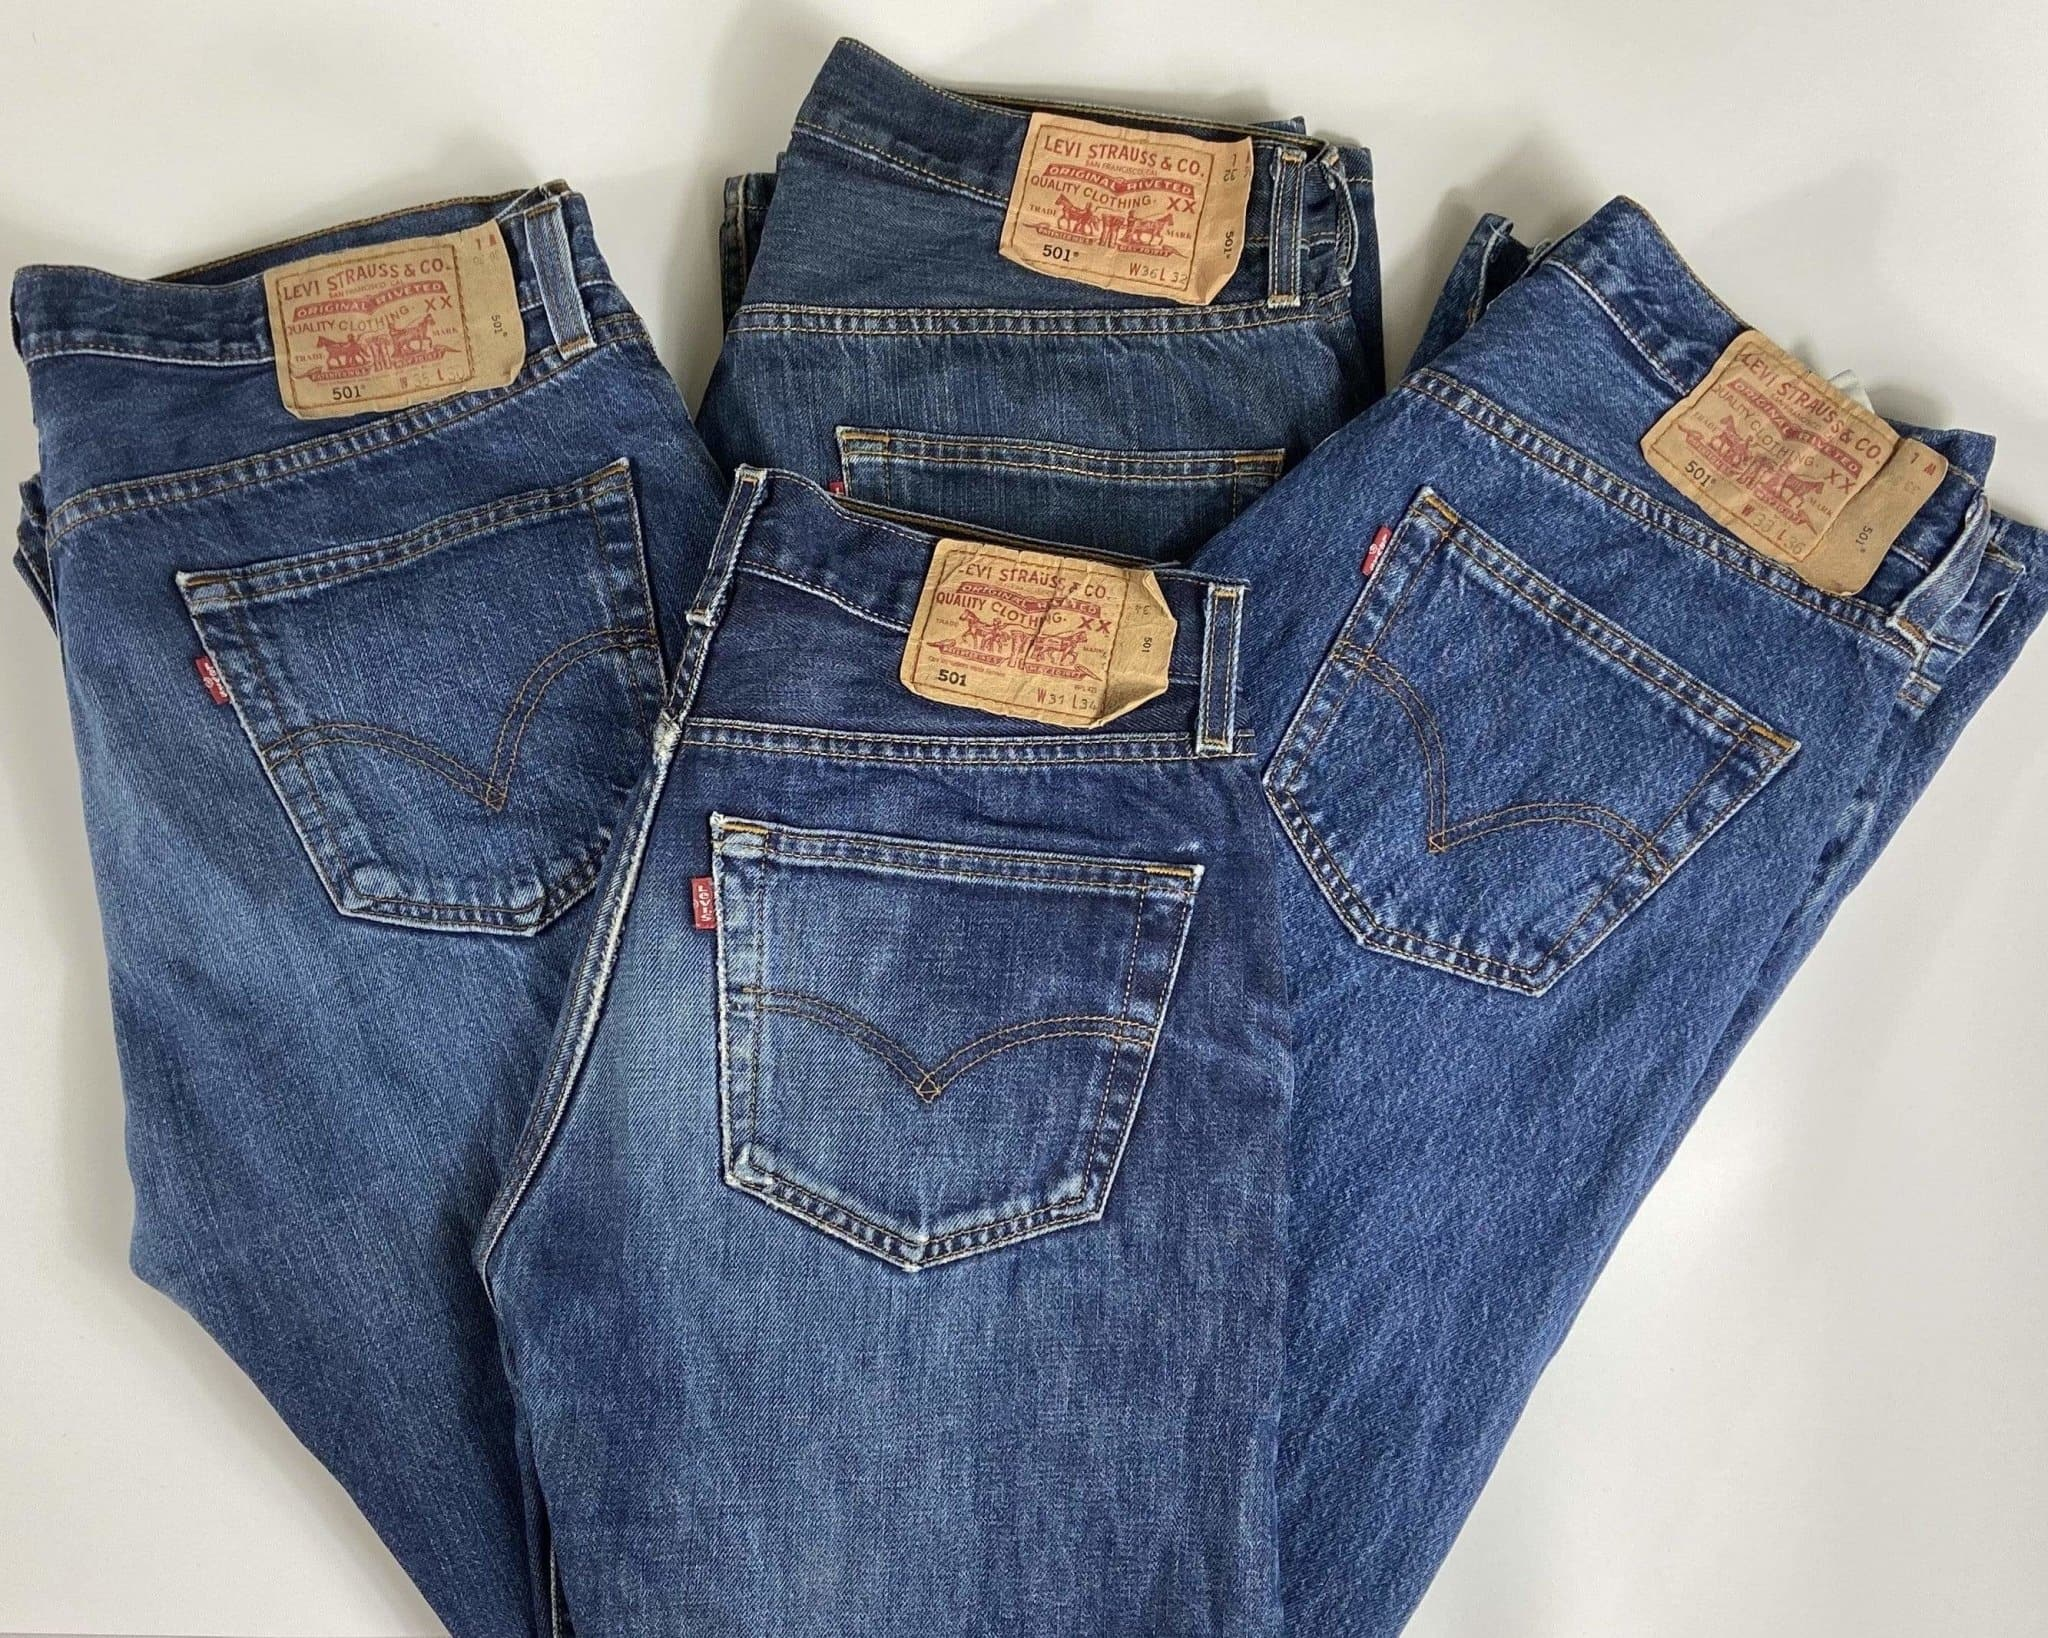 Vintage Levi's Classic 501 Jeans W34 L30 (DHLB2) - Discounted Deals UK